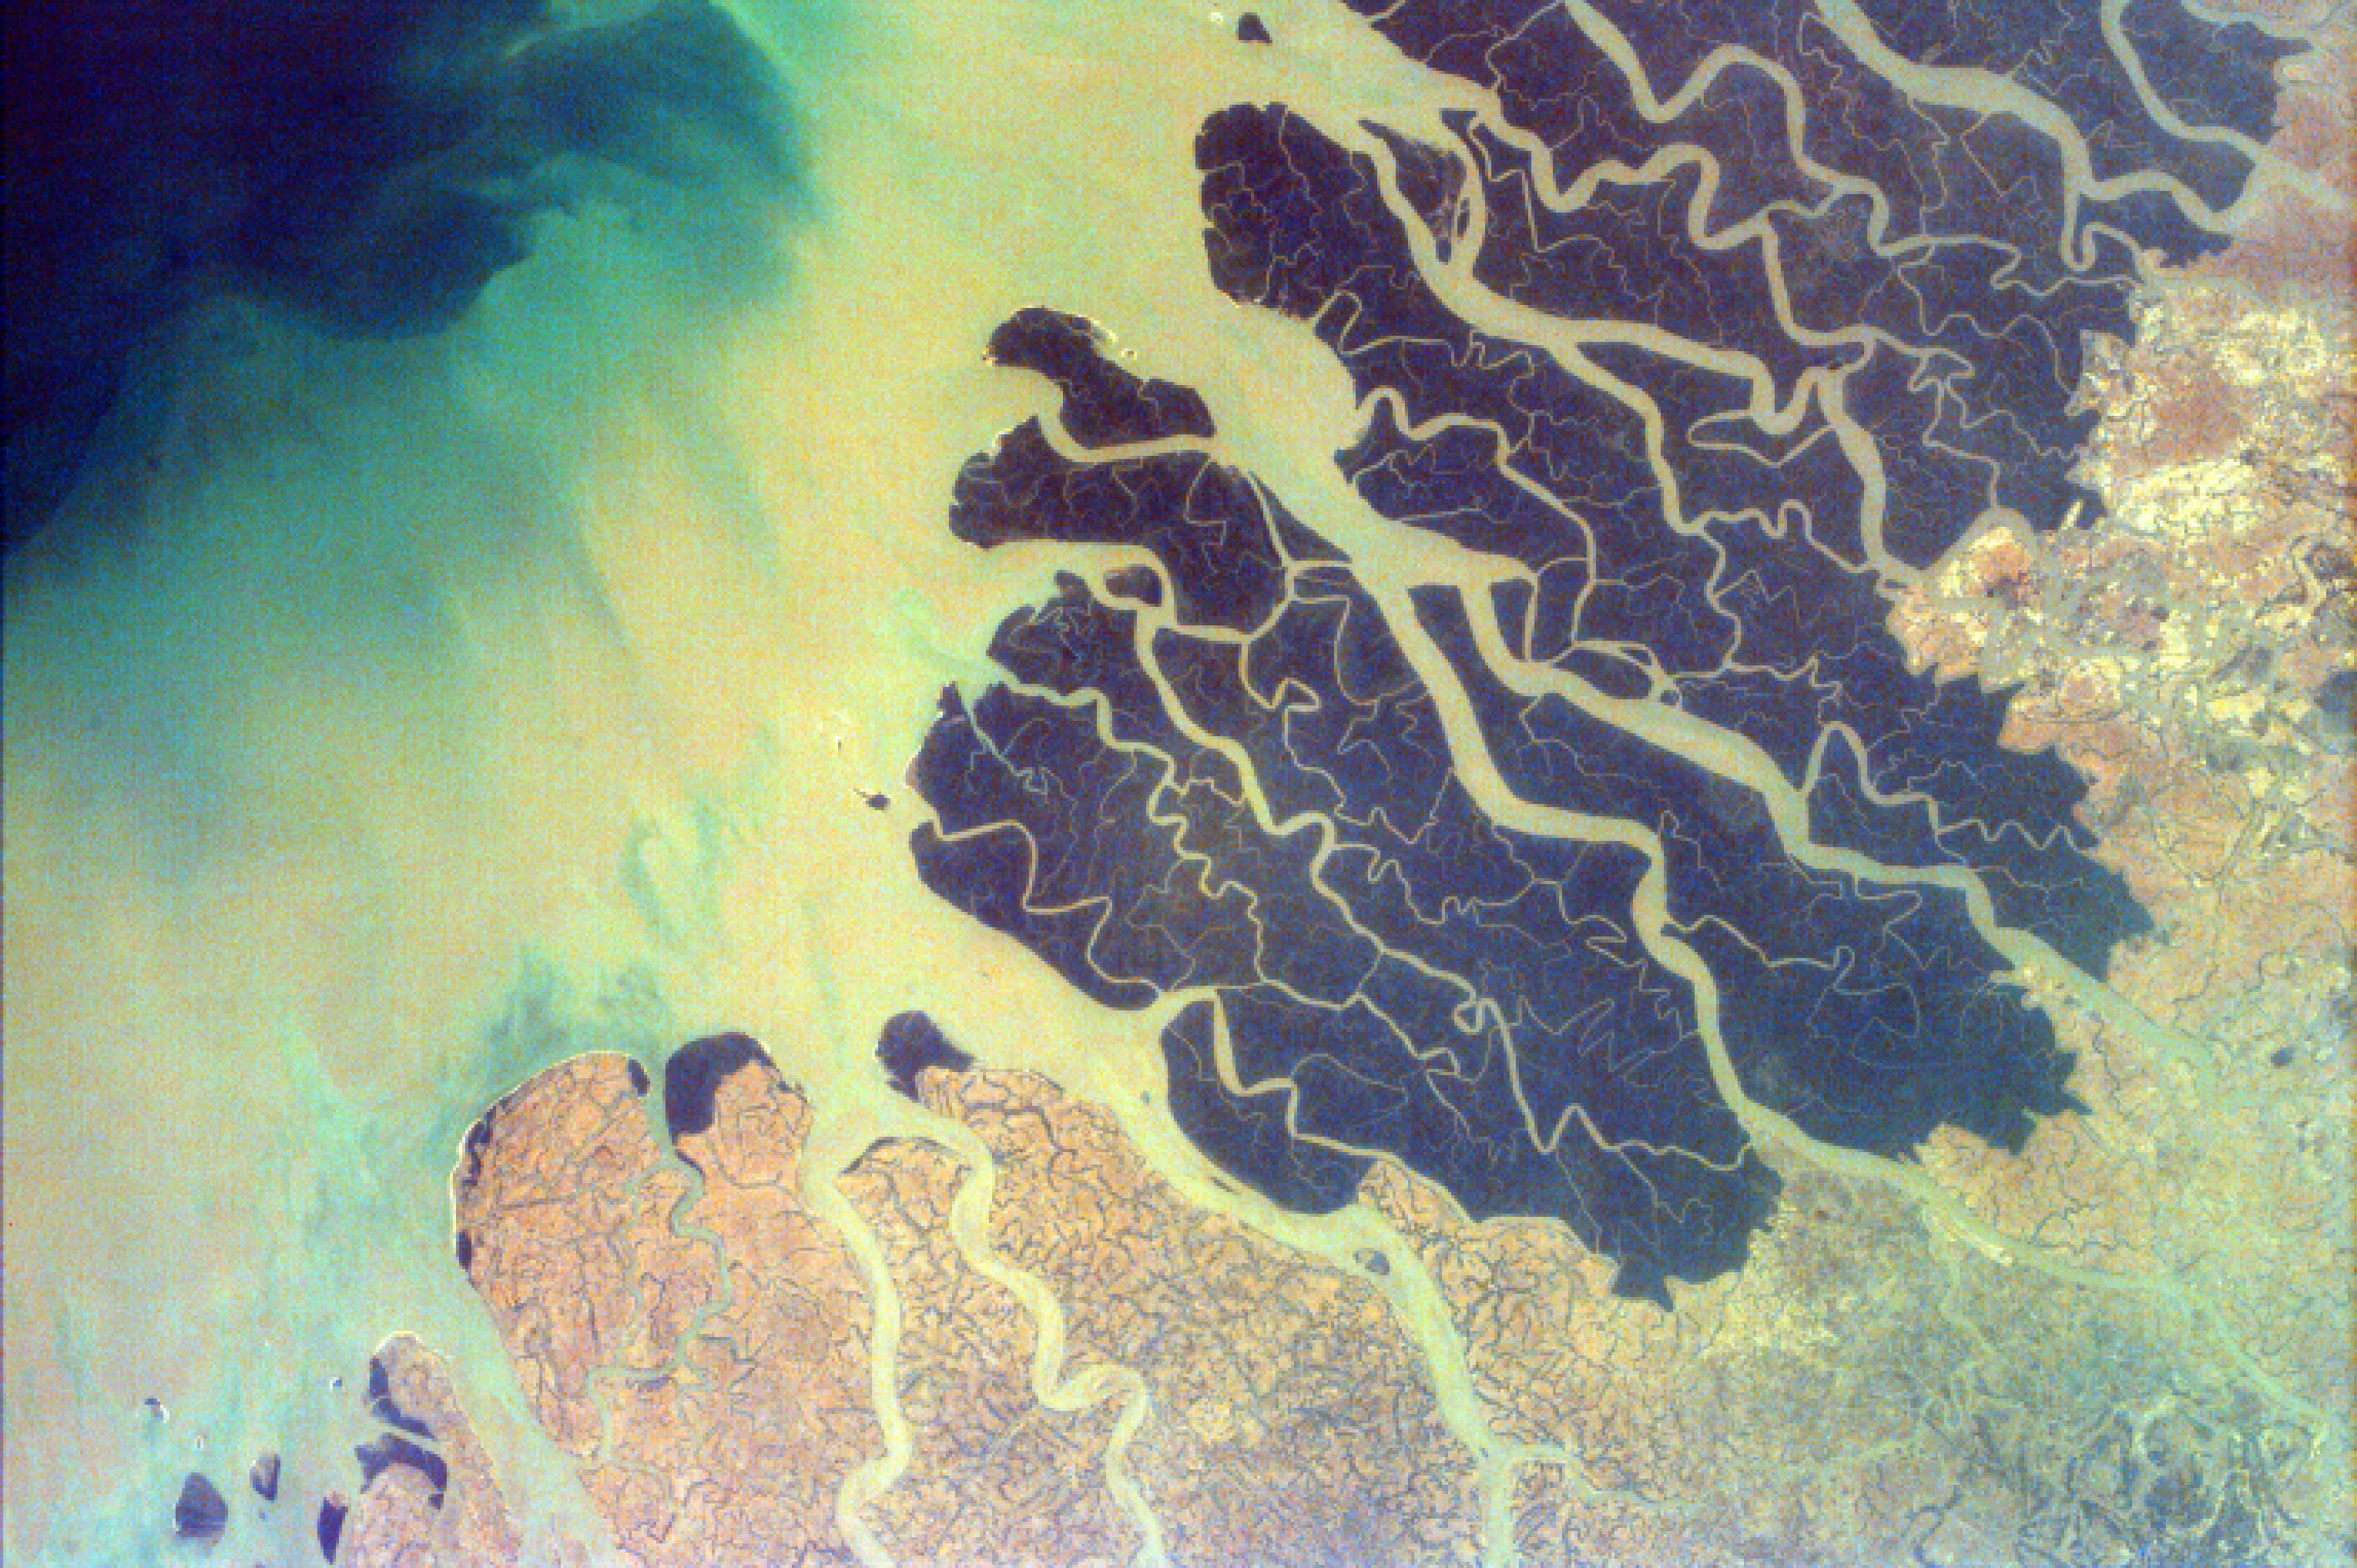 The Sundarbans Delta is the largest river delta in the world